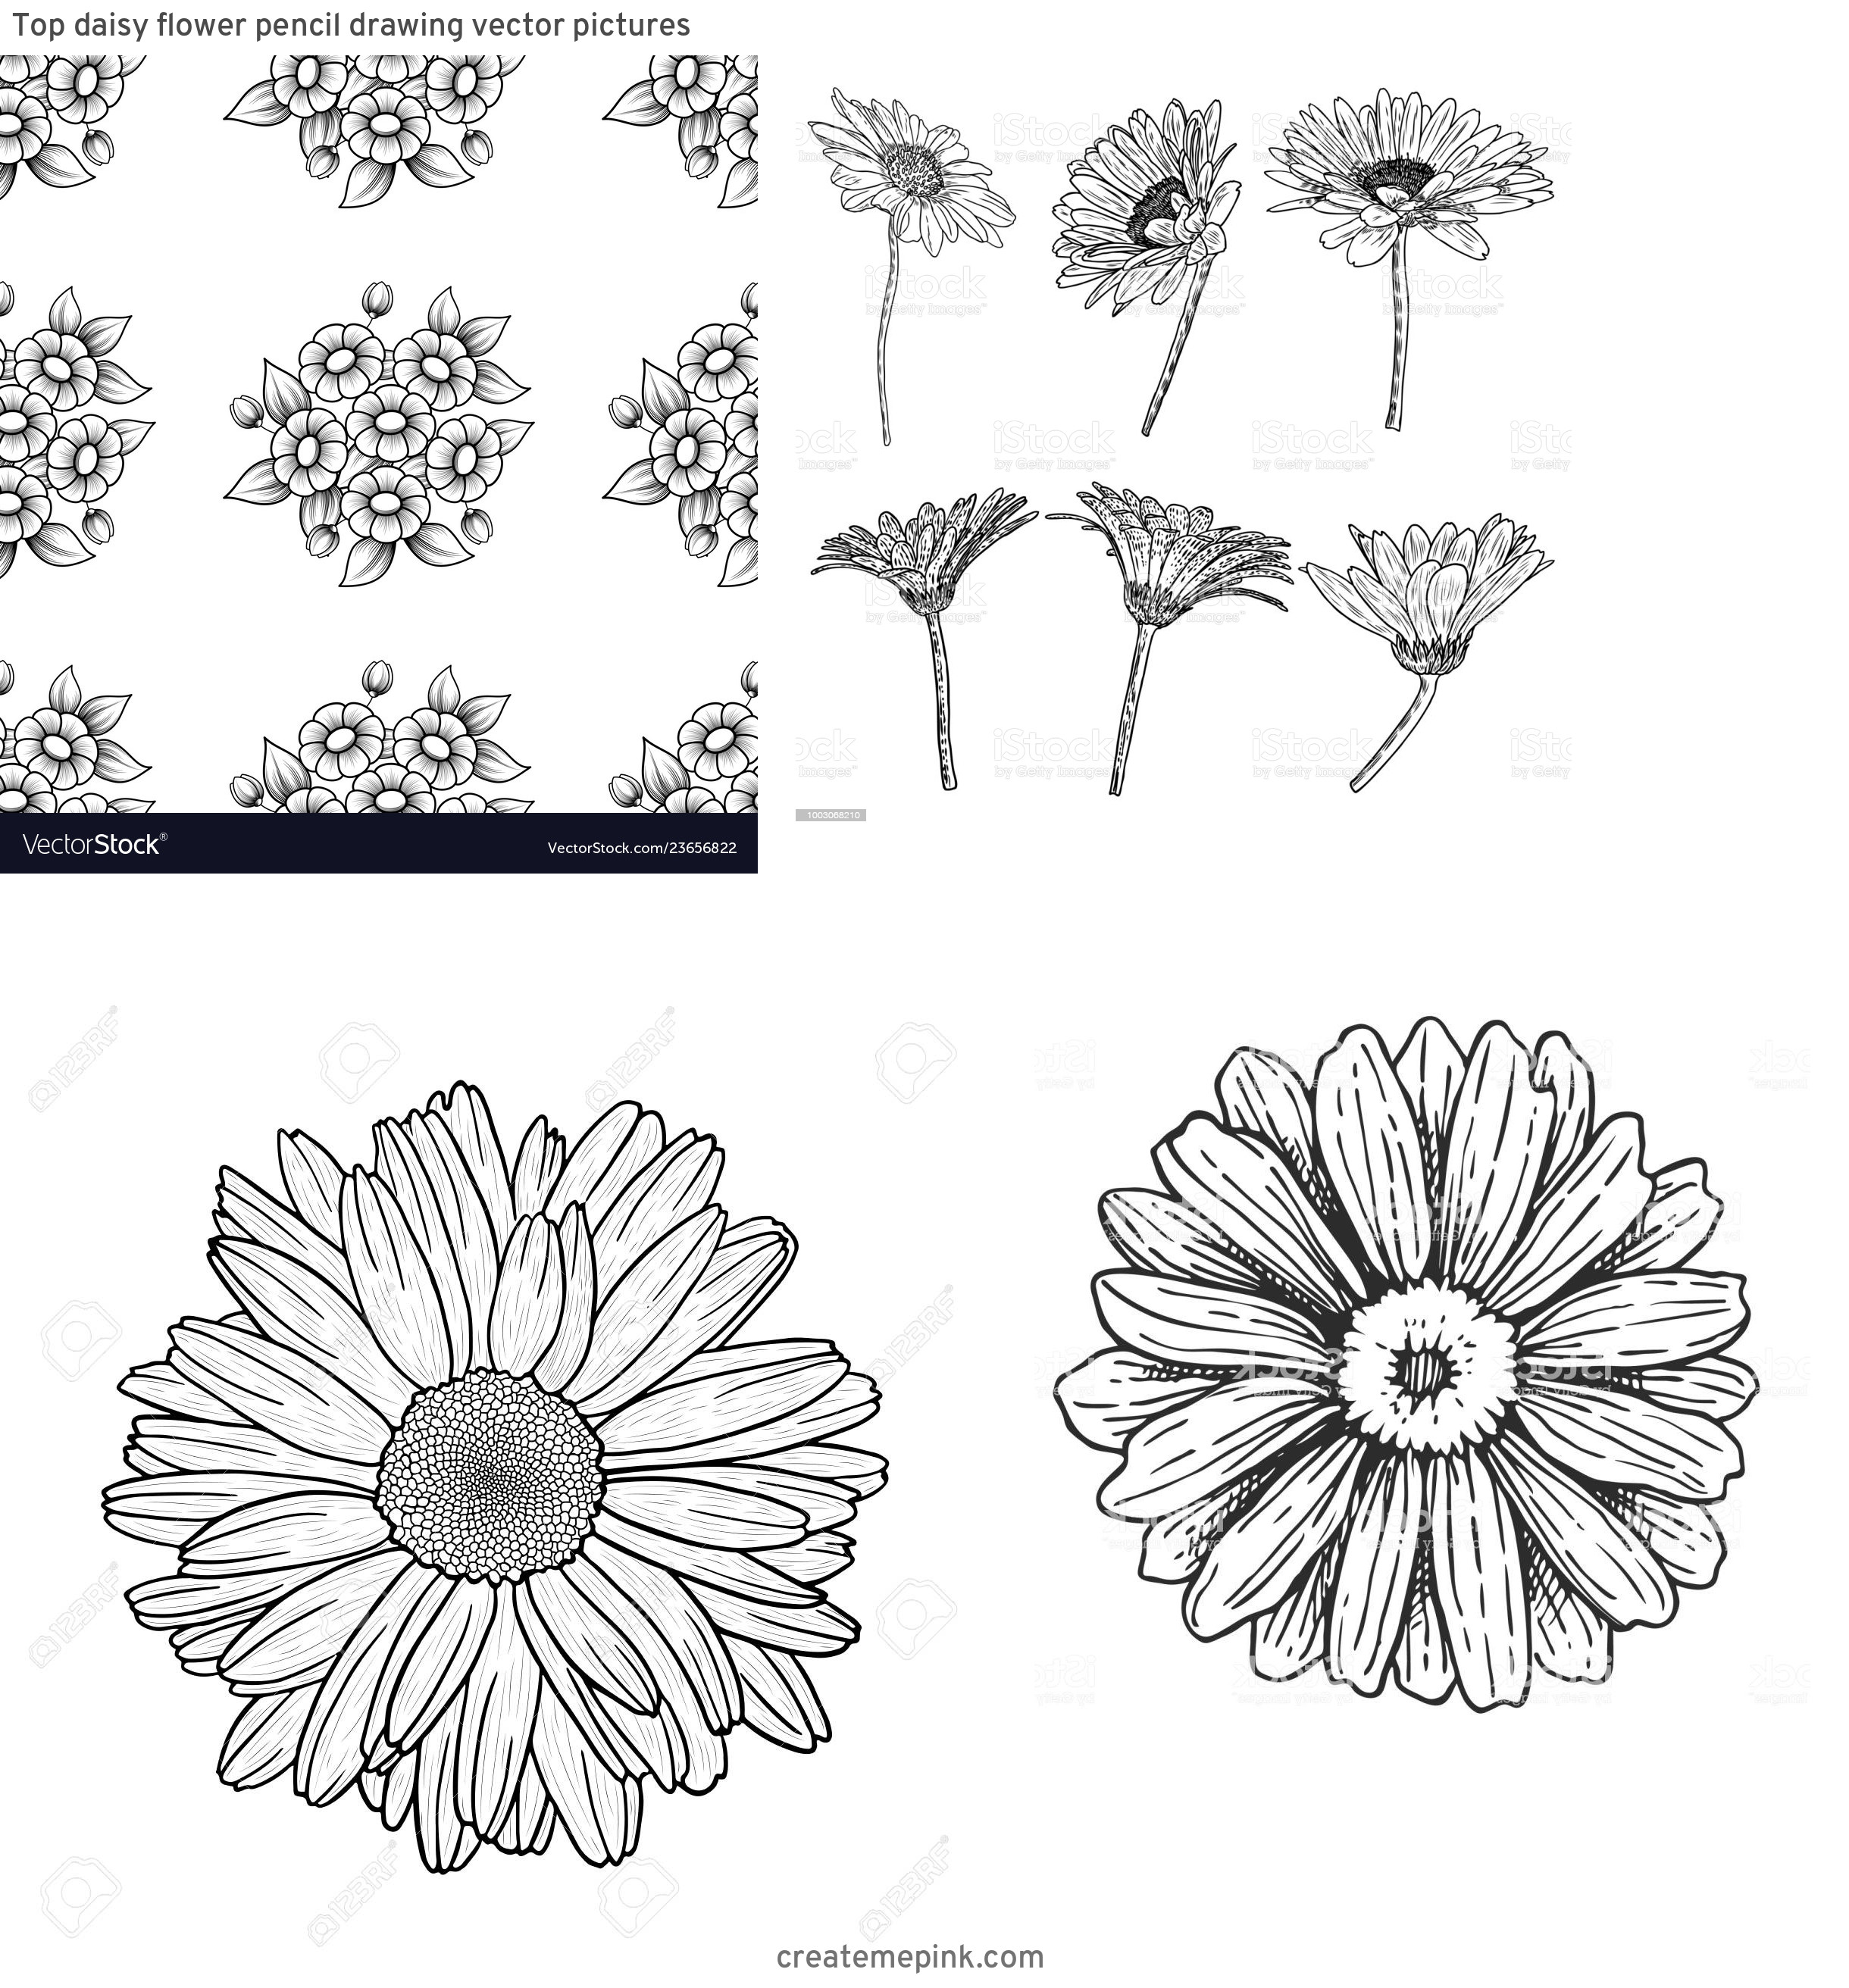 Flower Daisey Black Vector Art: Top Daisy Flower Pencil Drawing Vector Pictures